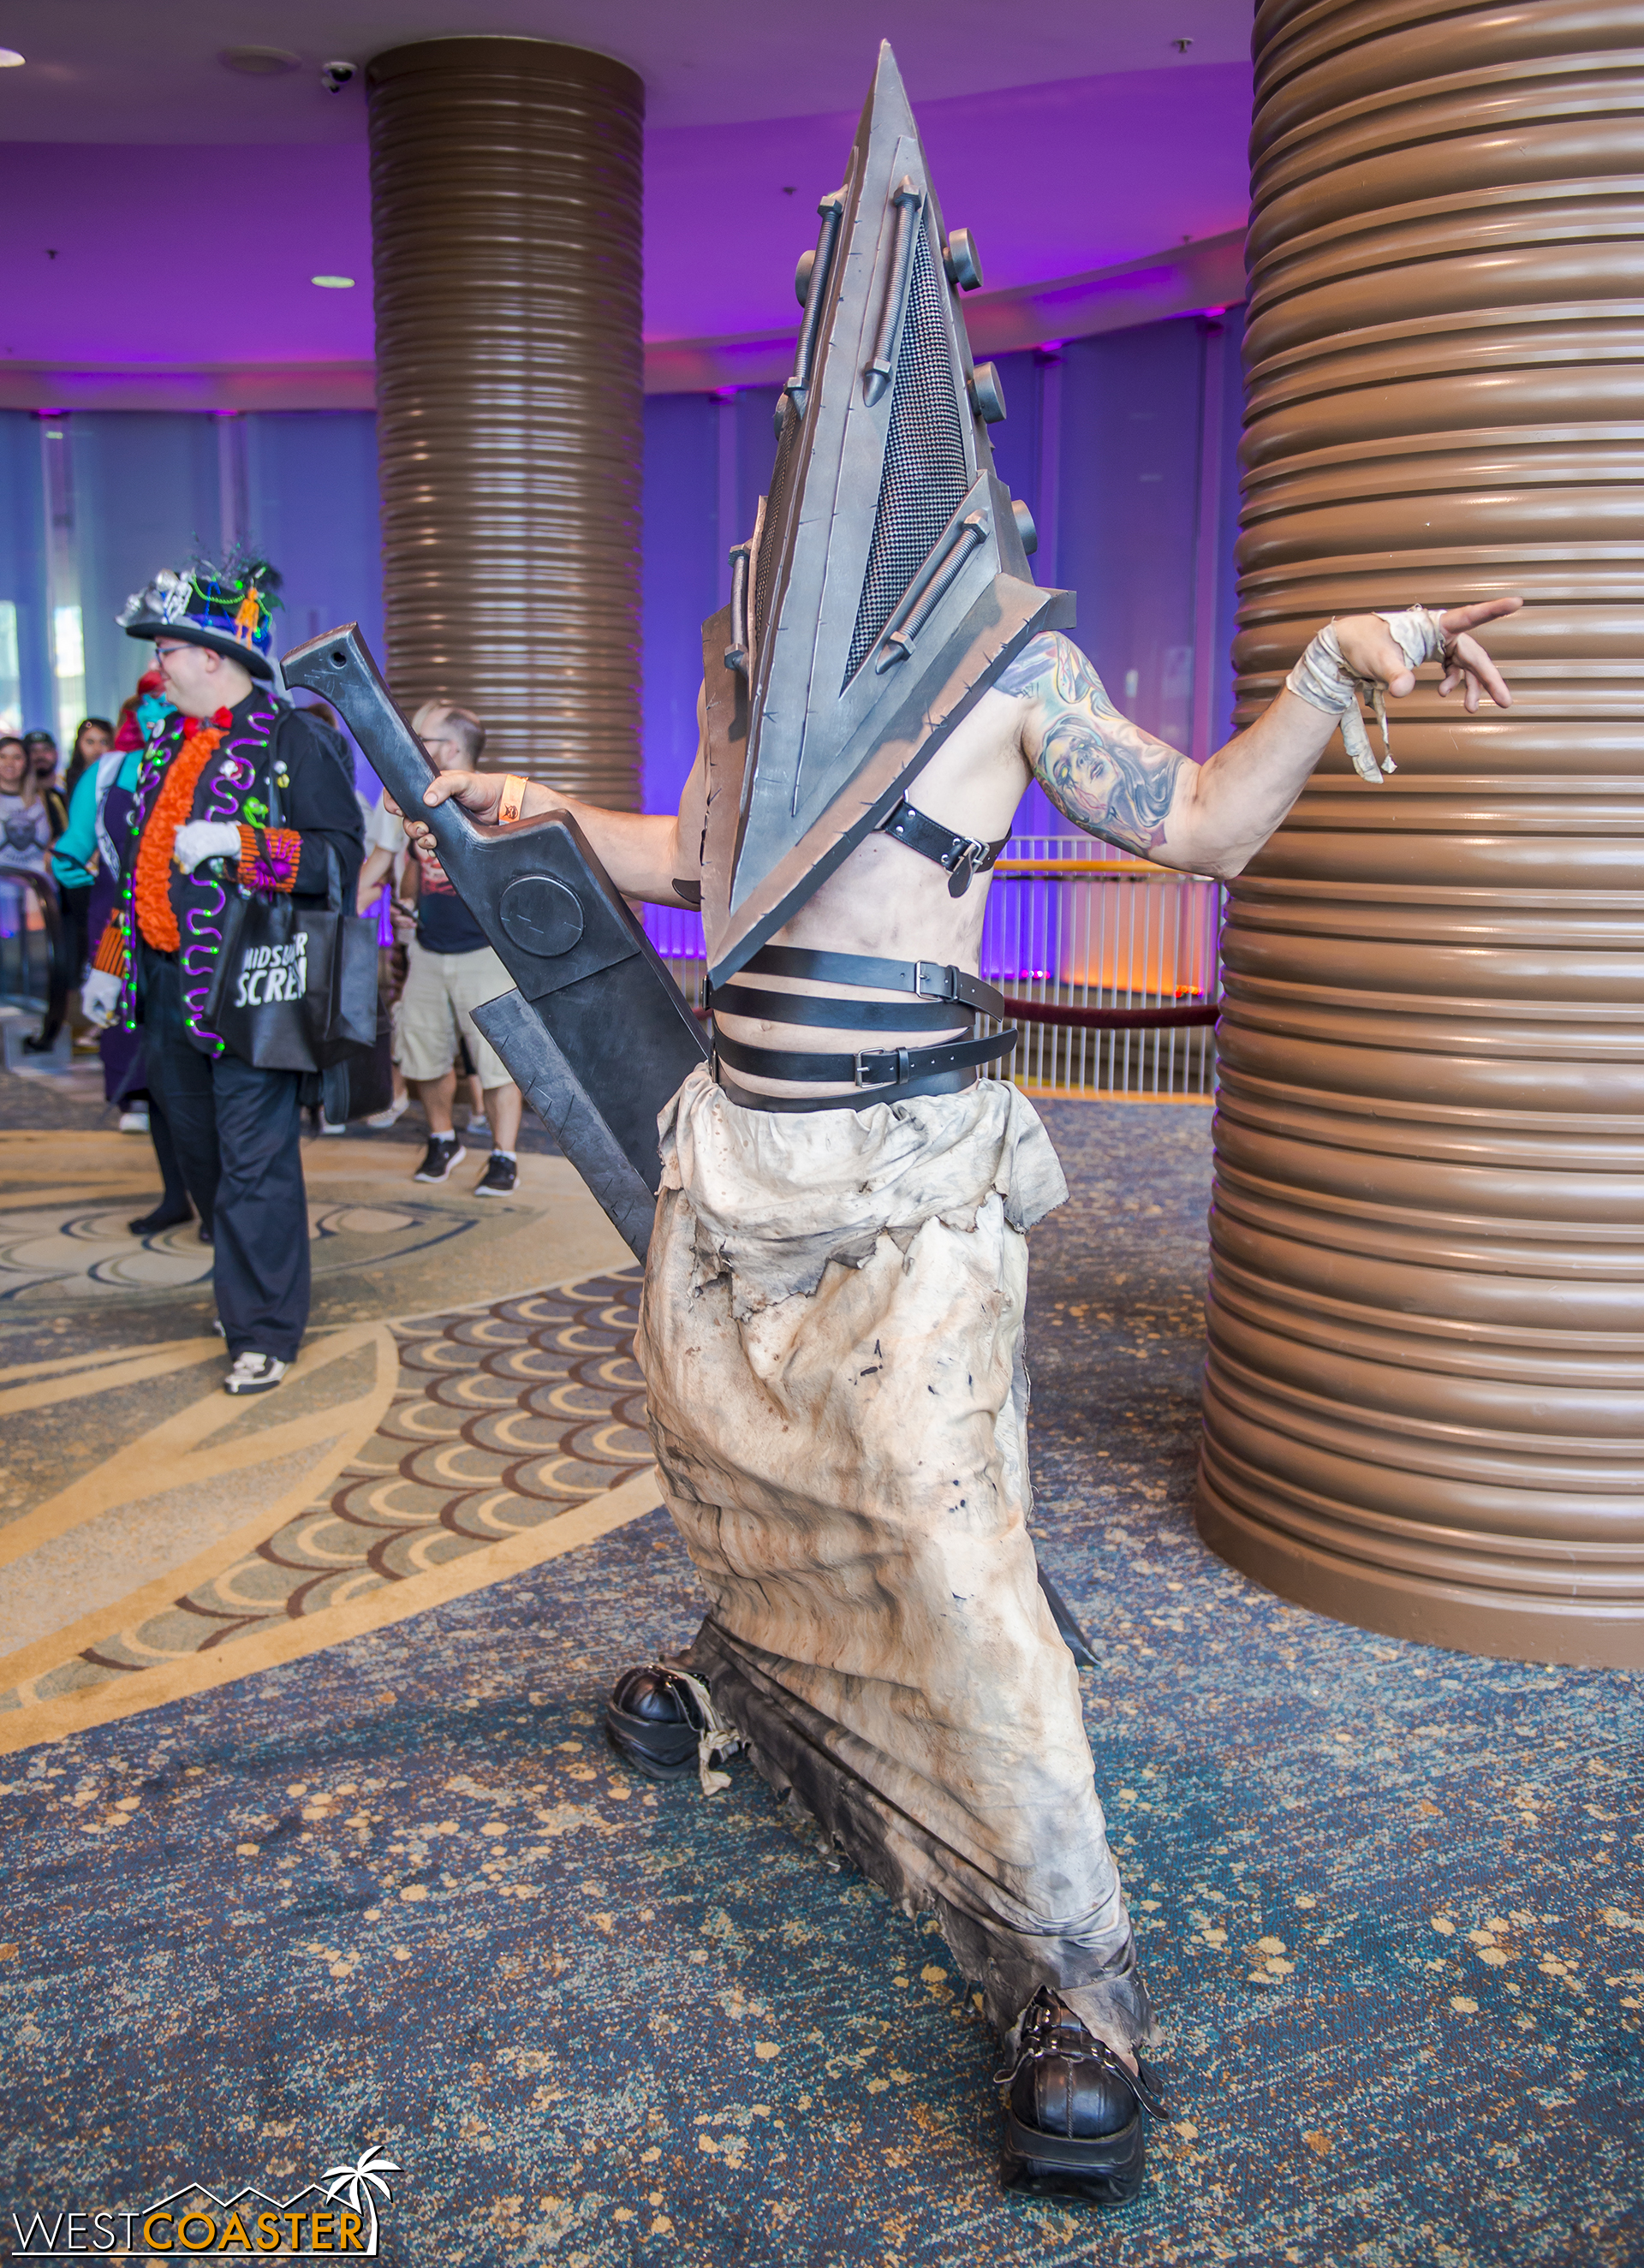 The actual cosplayers (versus original character creations) were out in force too. Anyone fancy a Pyramid Head?